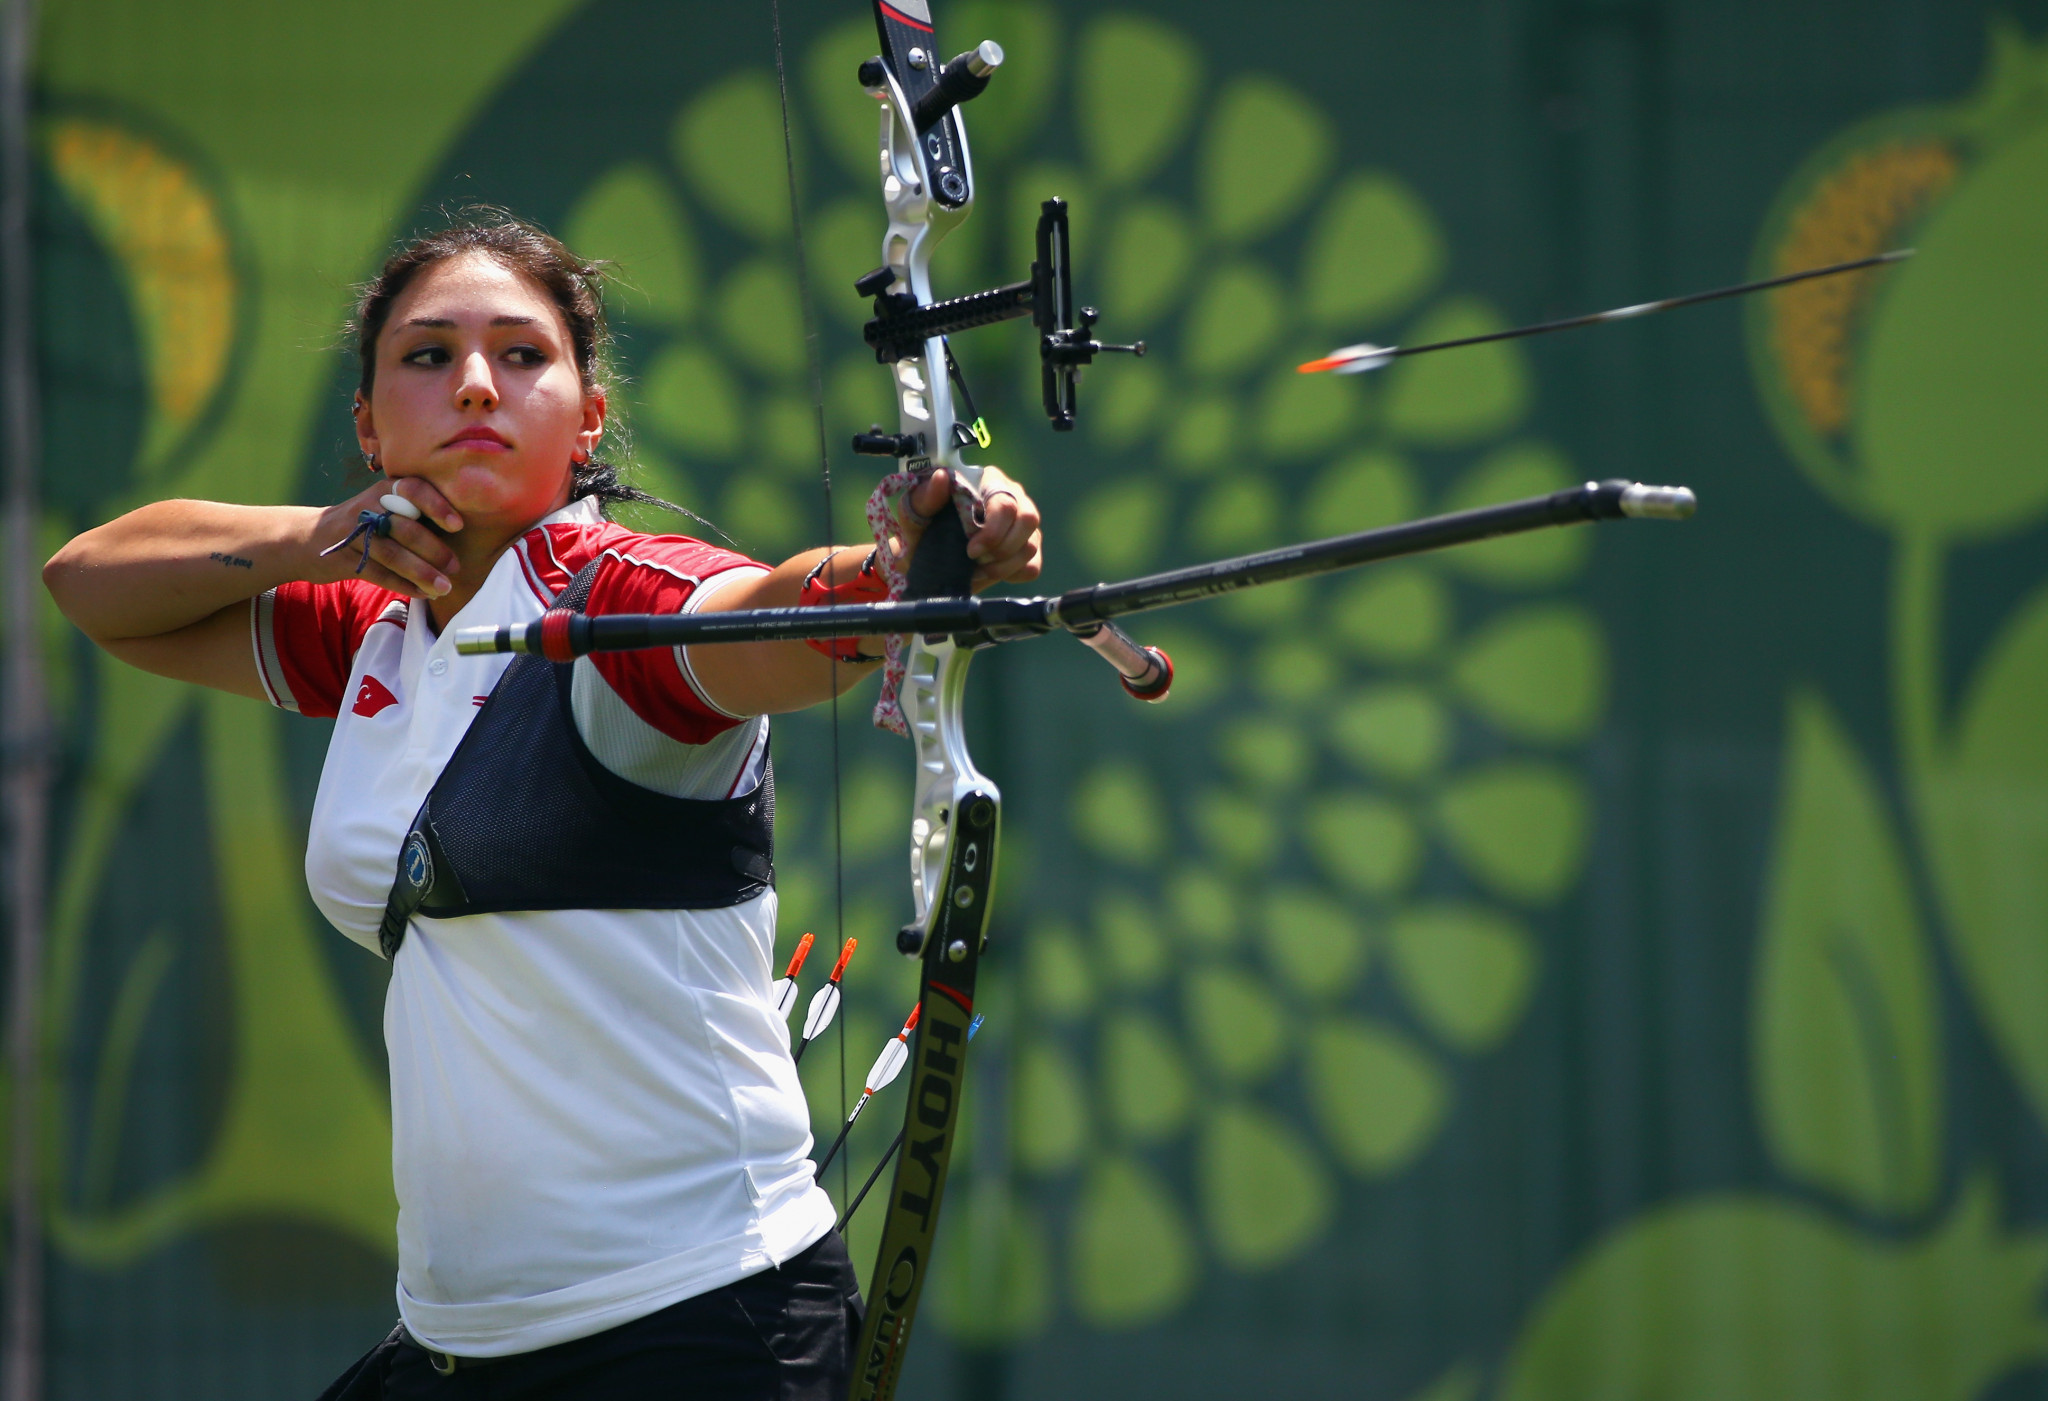 Turkey's Yasemin Anagoz ousted 2013 world champion Maja Jager of Denmark to clinch the women's recurve gold medal ©Getty Images